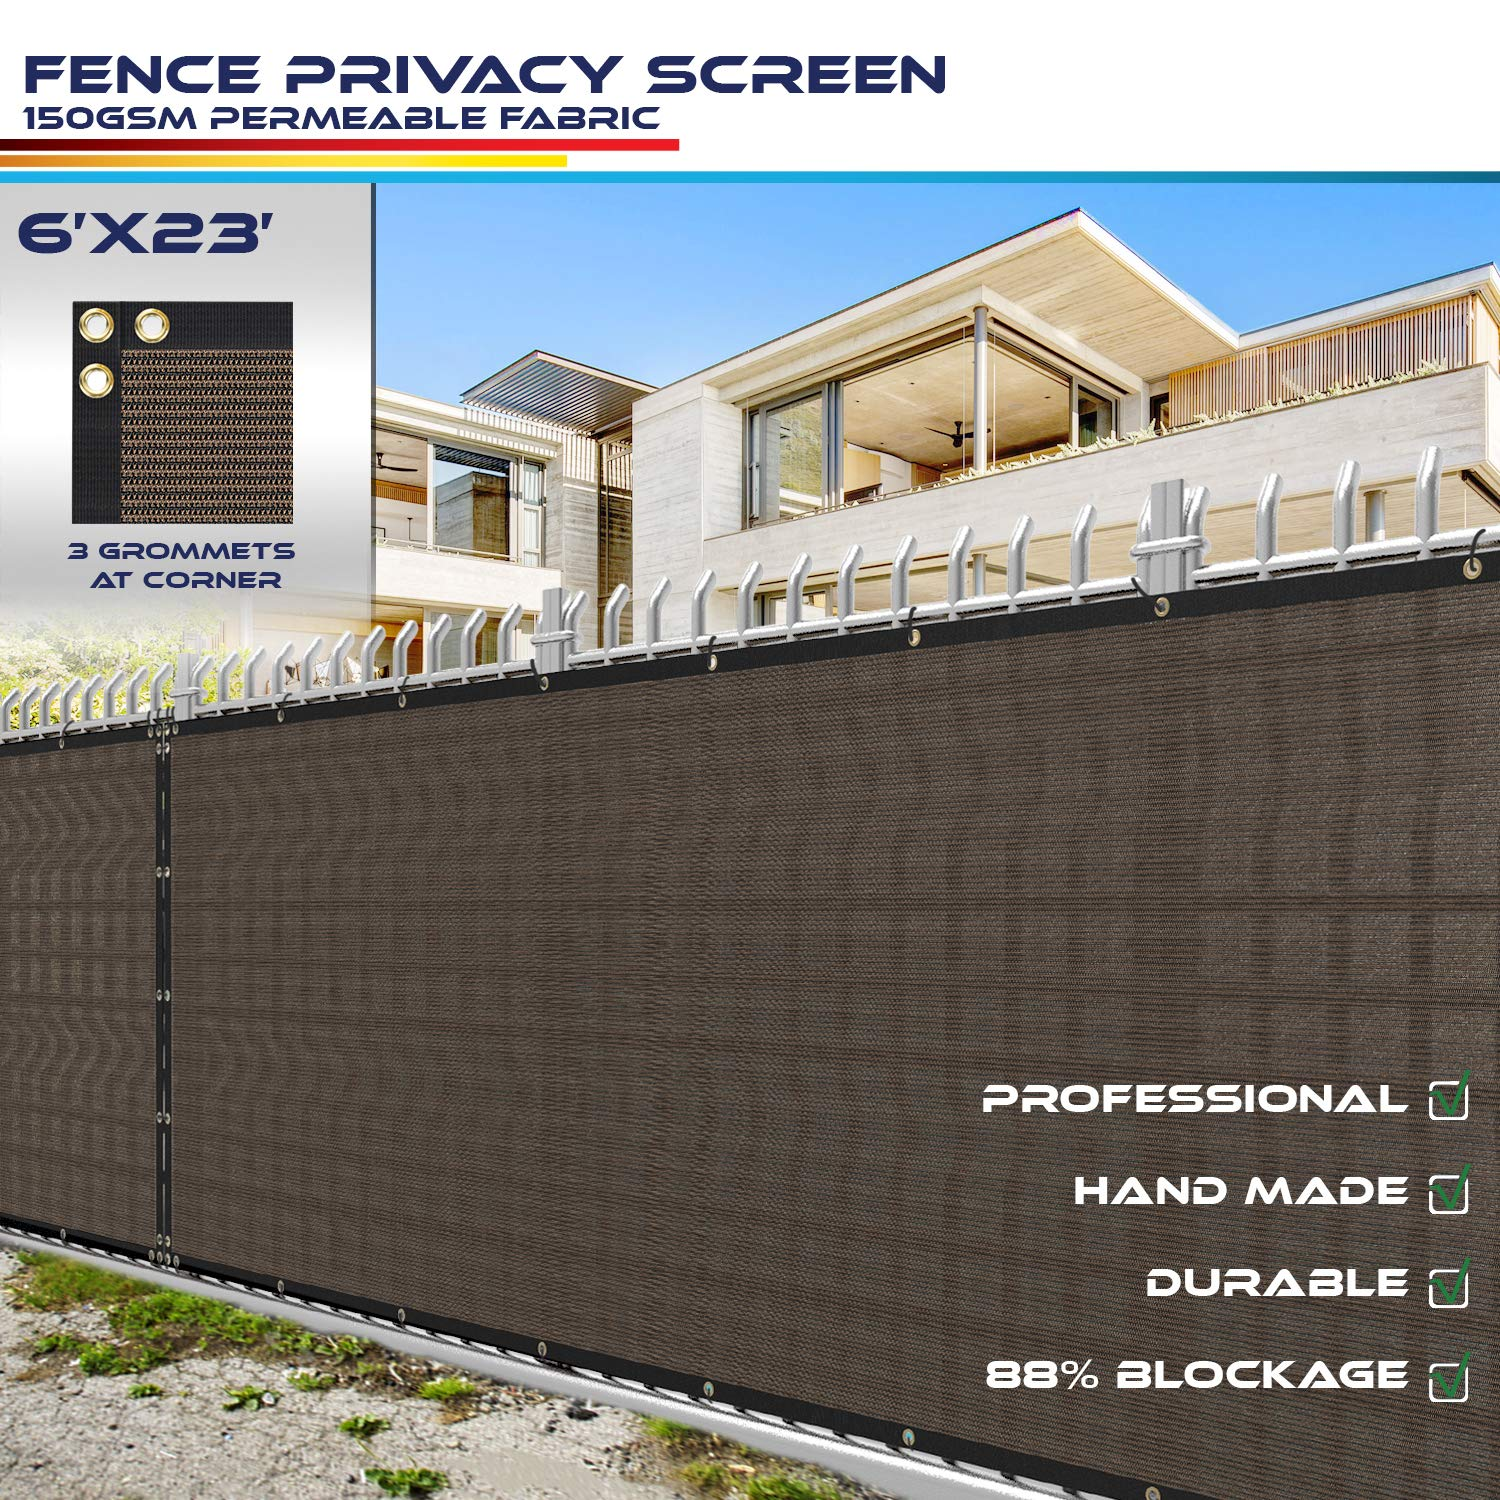 Windscreen4less Heavy Duty Privacy Screen Fence in Color Brown with Black Strips 6' x 23' Brass Grommets w/3-Year Warranty 150 GSM (Customized Size)